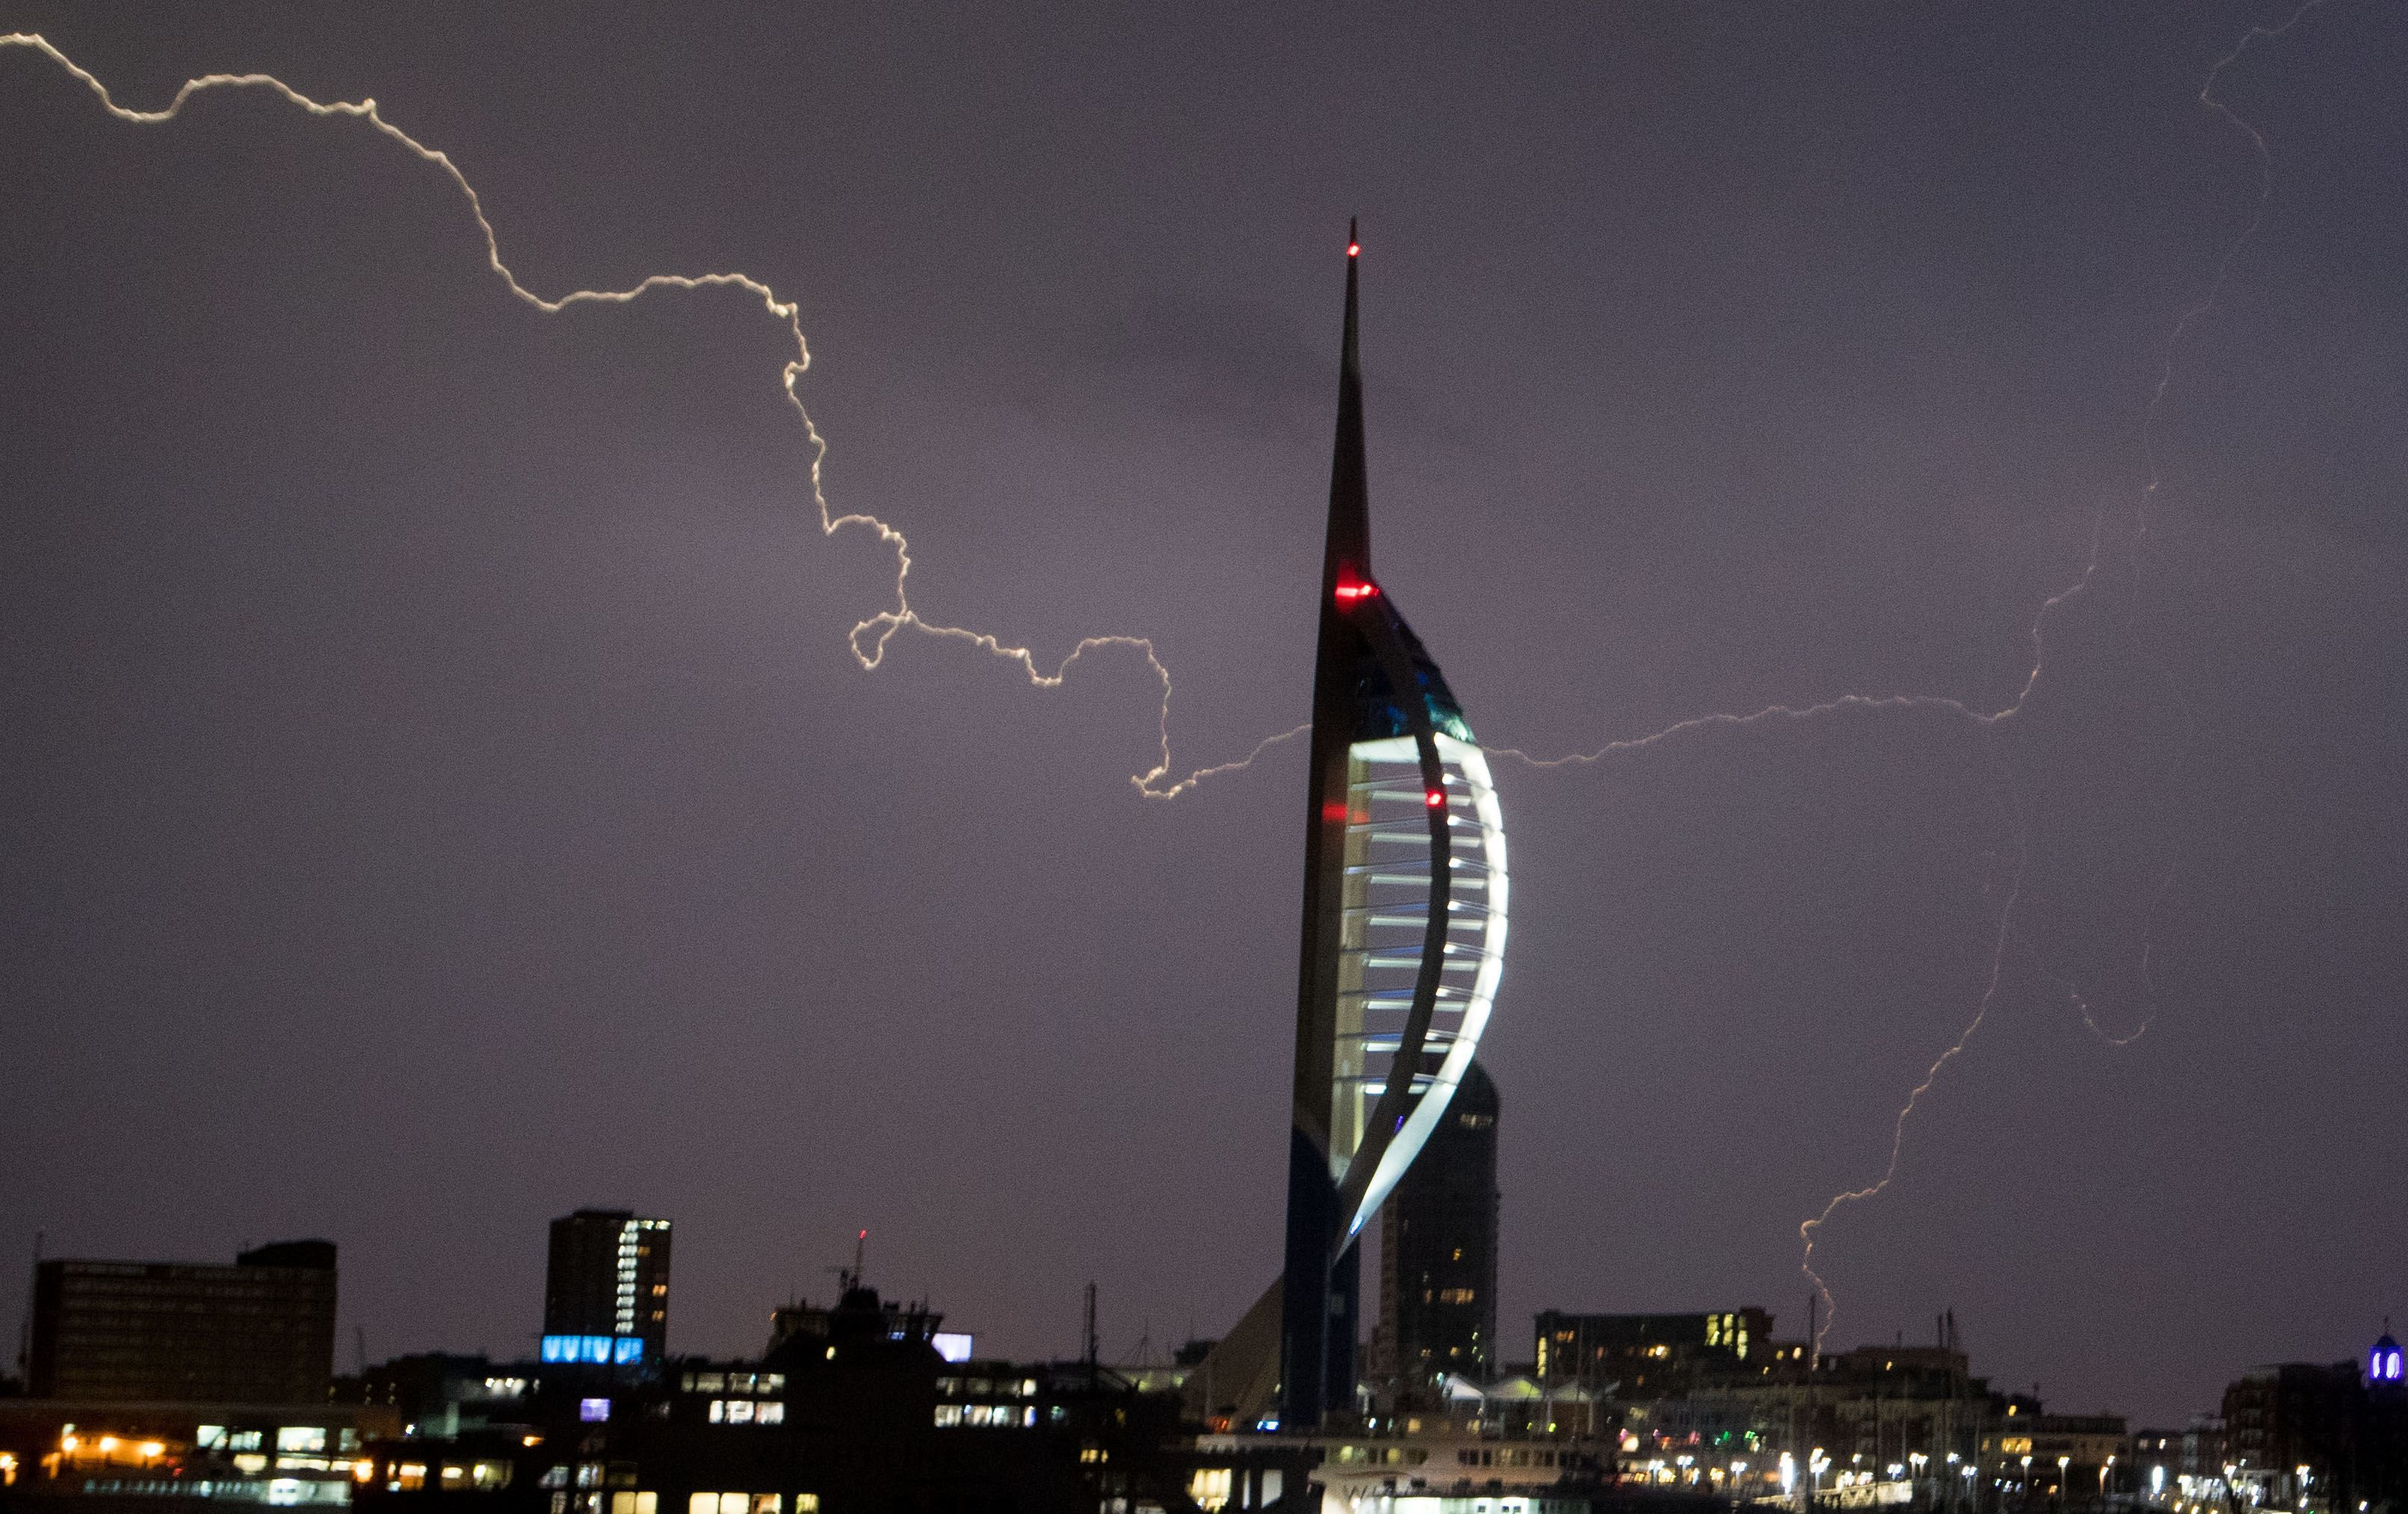 Lightning flashes near the Spinnaker Tower in Portsmouth (Steve Parsons/PA Wire)